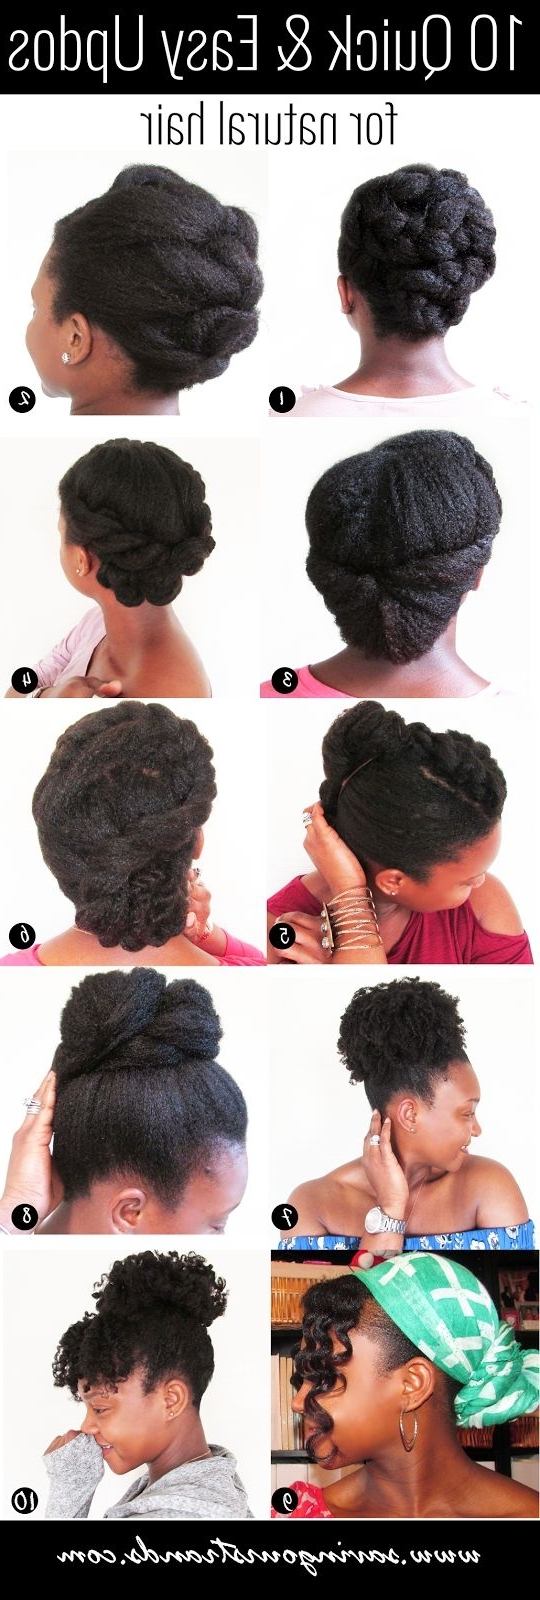 311 Best Short & Medium Natural Hair Styles Images On Pinterest Inside Quick And Easy Updo Hairstyles For Black Hair (View 2 of 15)